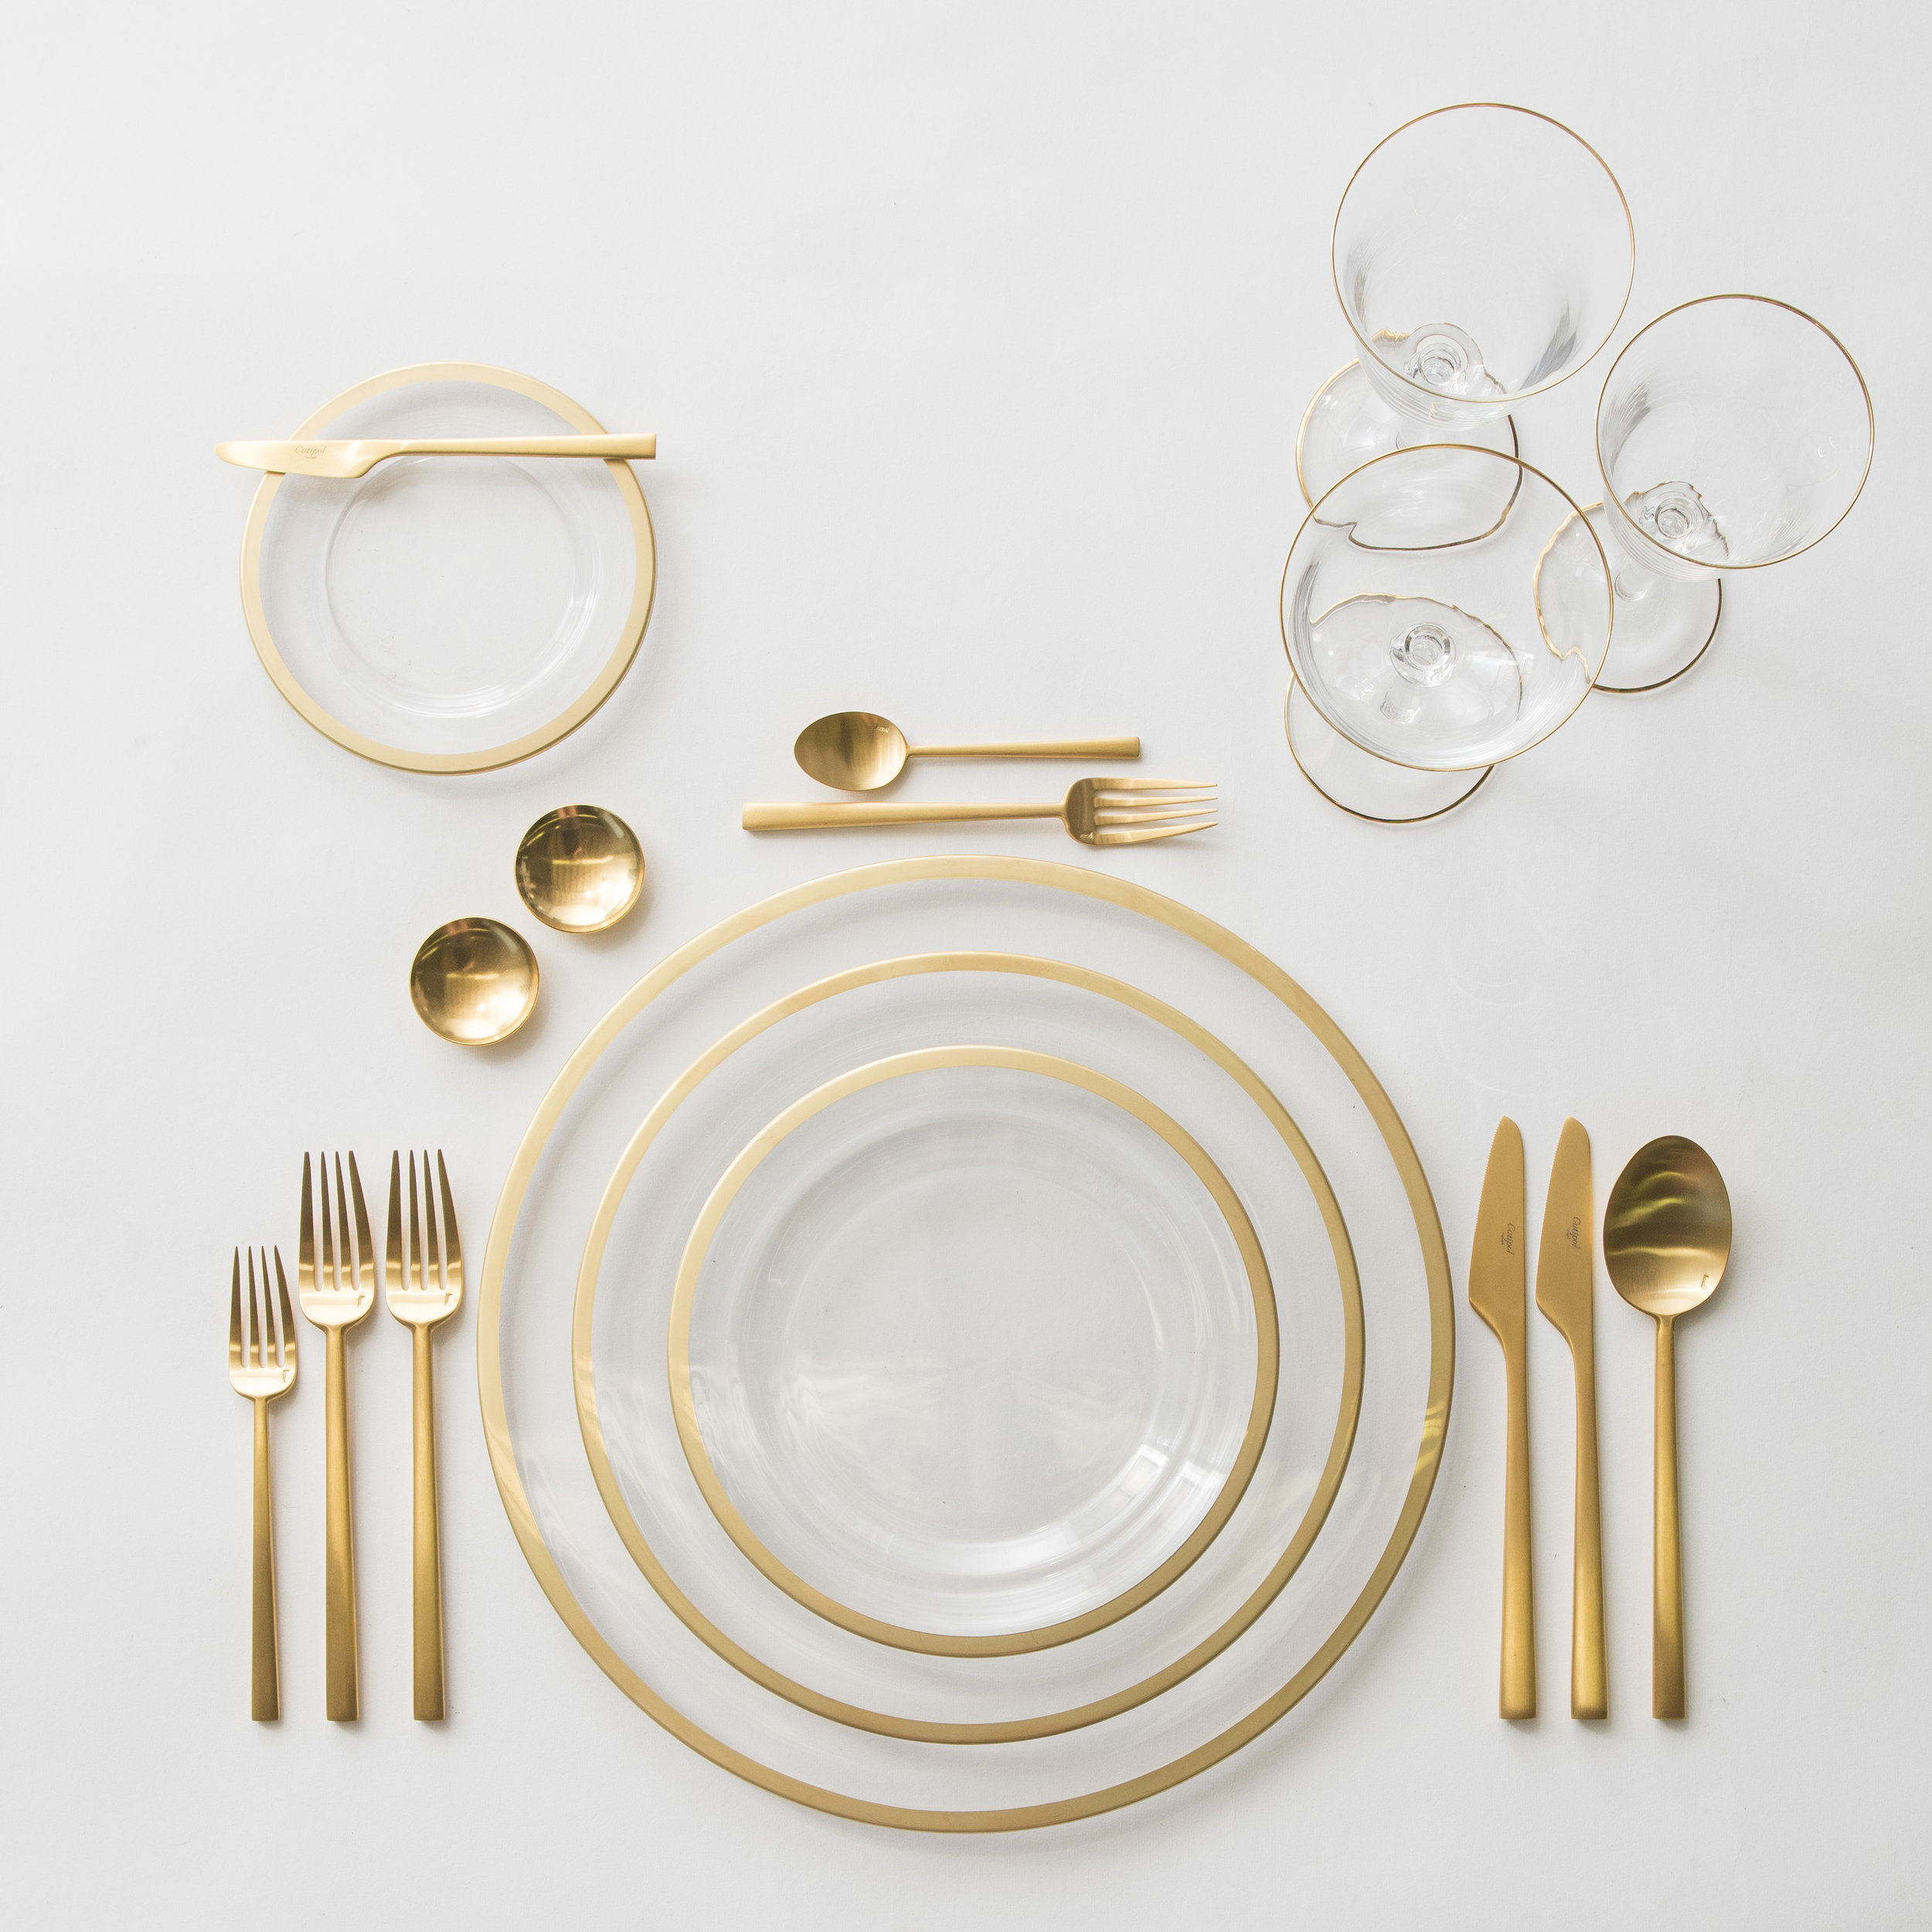 RENT: Halo Glass Chargers/Dinnerware in 24k Gold + Rondo Flatware in Brushed 24k Gold + Chloe 24k Gold Rimmed Stemware + 14k Gold Salt Cellars + Tiny Gold Spoons  SHOP: Halo Glass Chargers/Dinnerware in 24k Gold + Rondo Flatware in Brushed 24k Gold + Chloe 24k Gold Rimmed Stemware + 14k Gold Salt Cellars + Tiny Gold Spoons